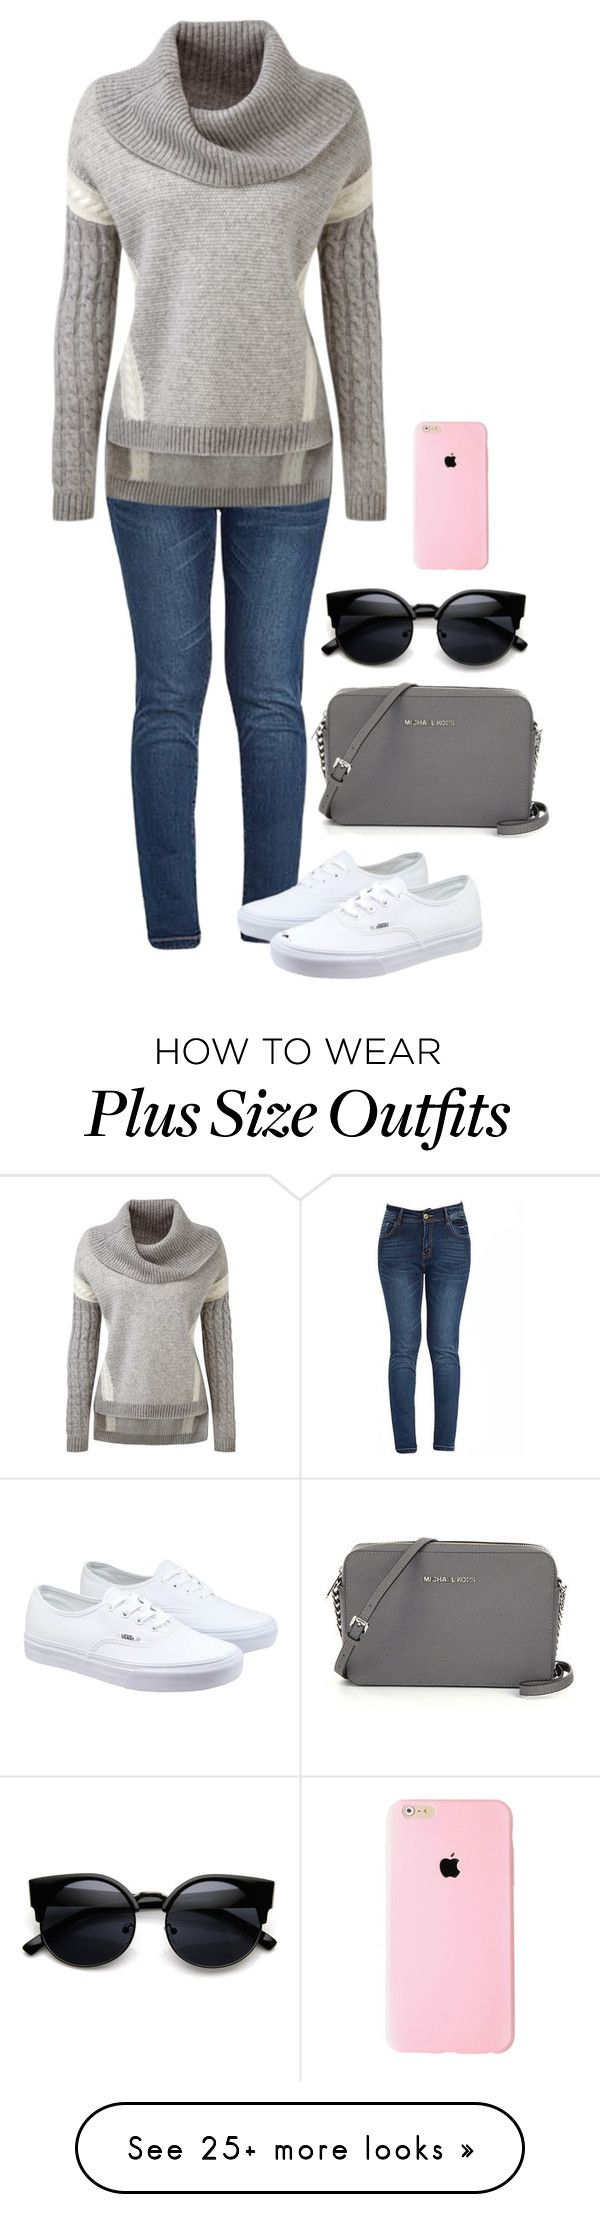 """""""Going to get the dye"""" by squishyfish16 on Polyvore featuring Vans, women's clothing, women's fashion, women, female, woman, misses and juniors"""